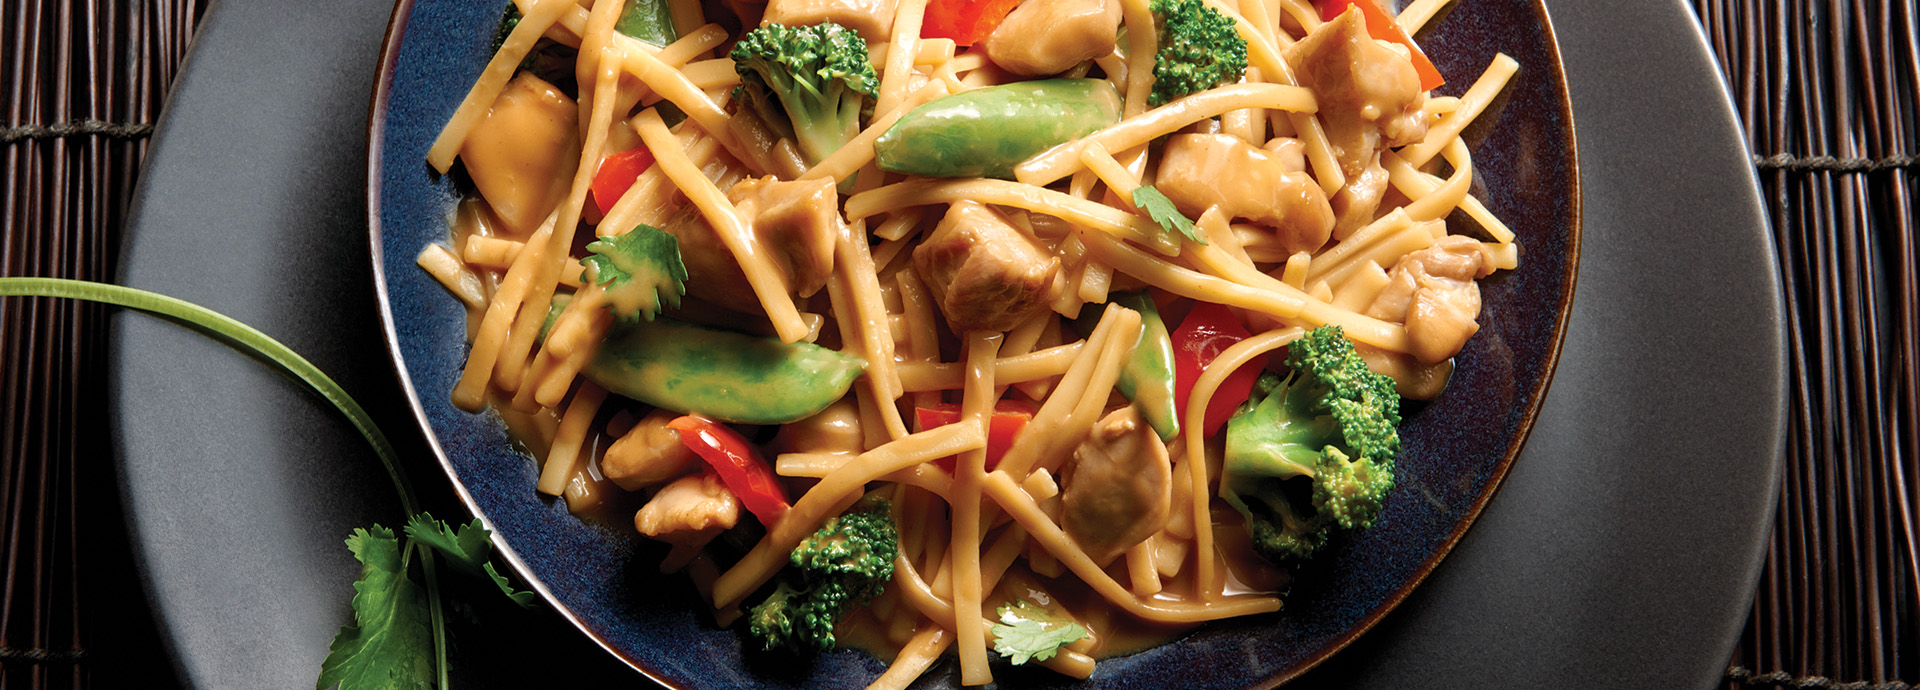 No Yolks 174 Kluski Noodles With Asian Vegetables And